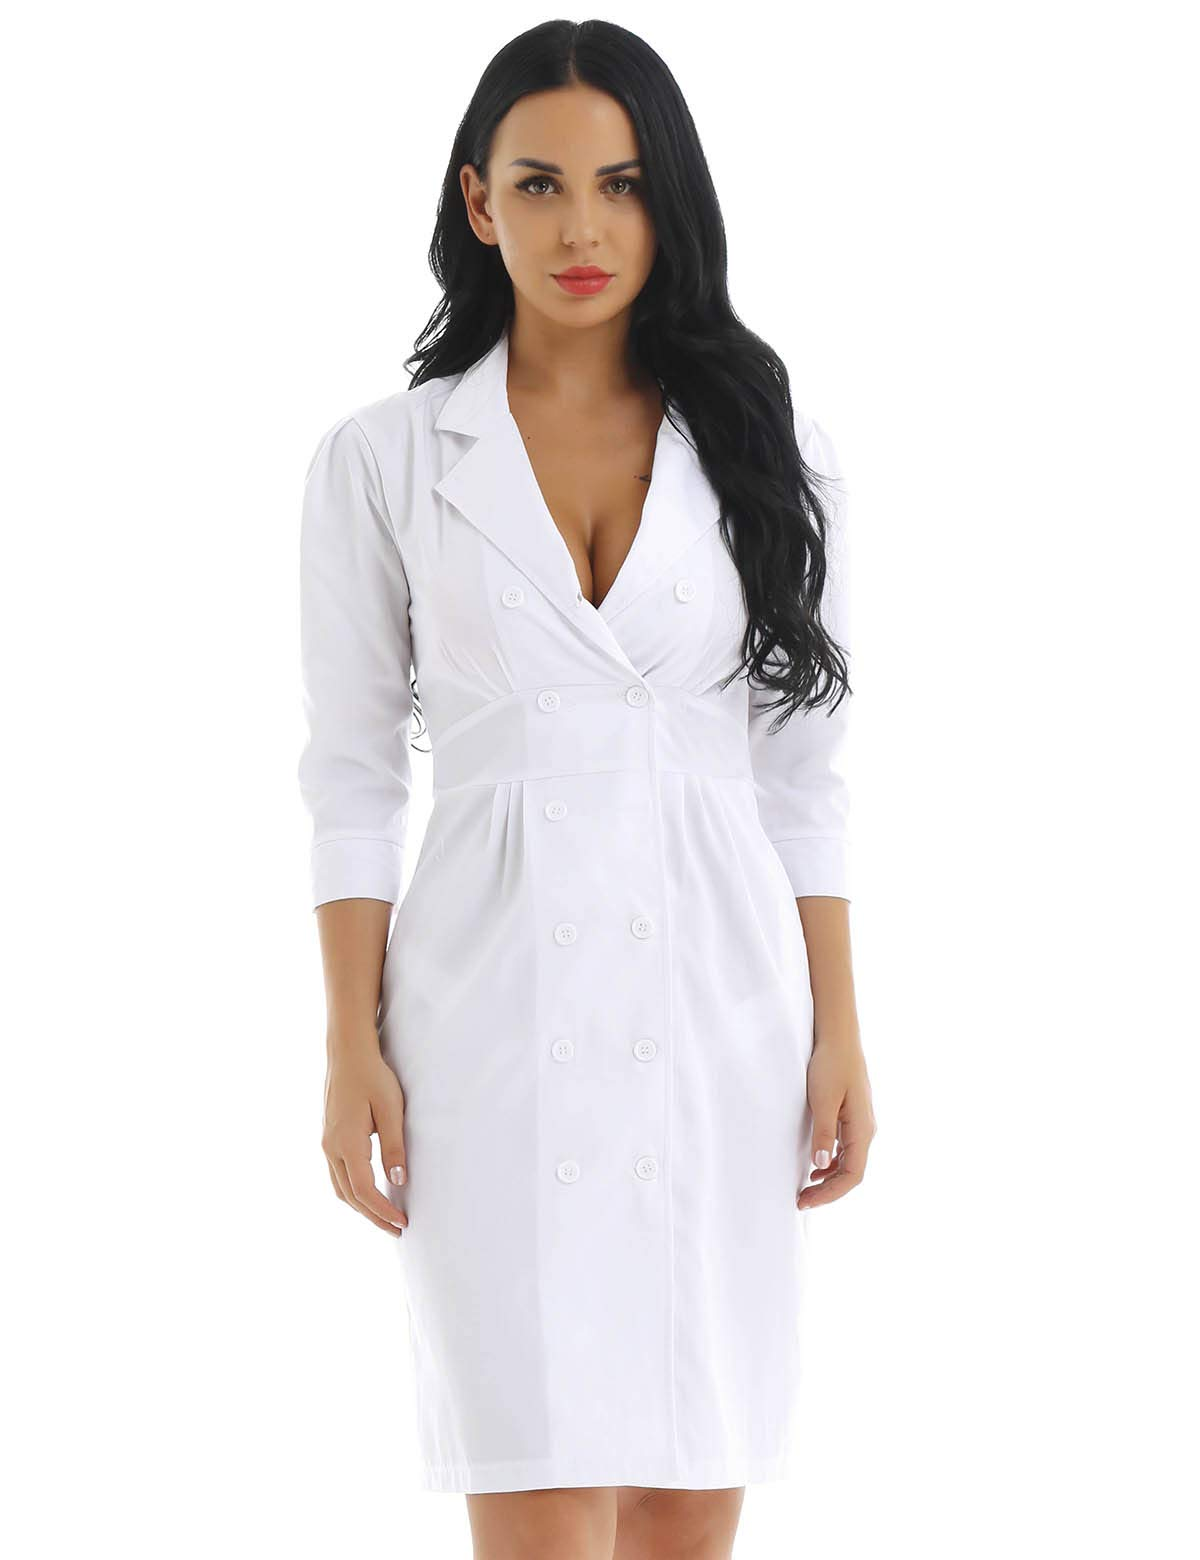 dPois Women Adult Double Breasted Button Medical Nursing Scrubs Lab Coat Uniforms Dress White 2X-Large